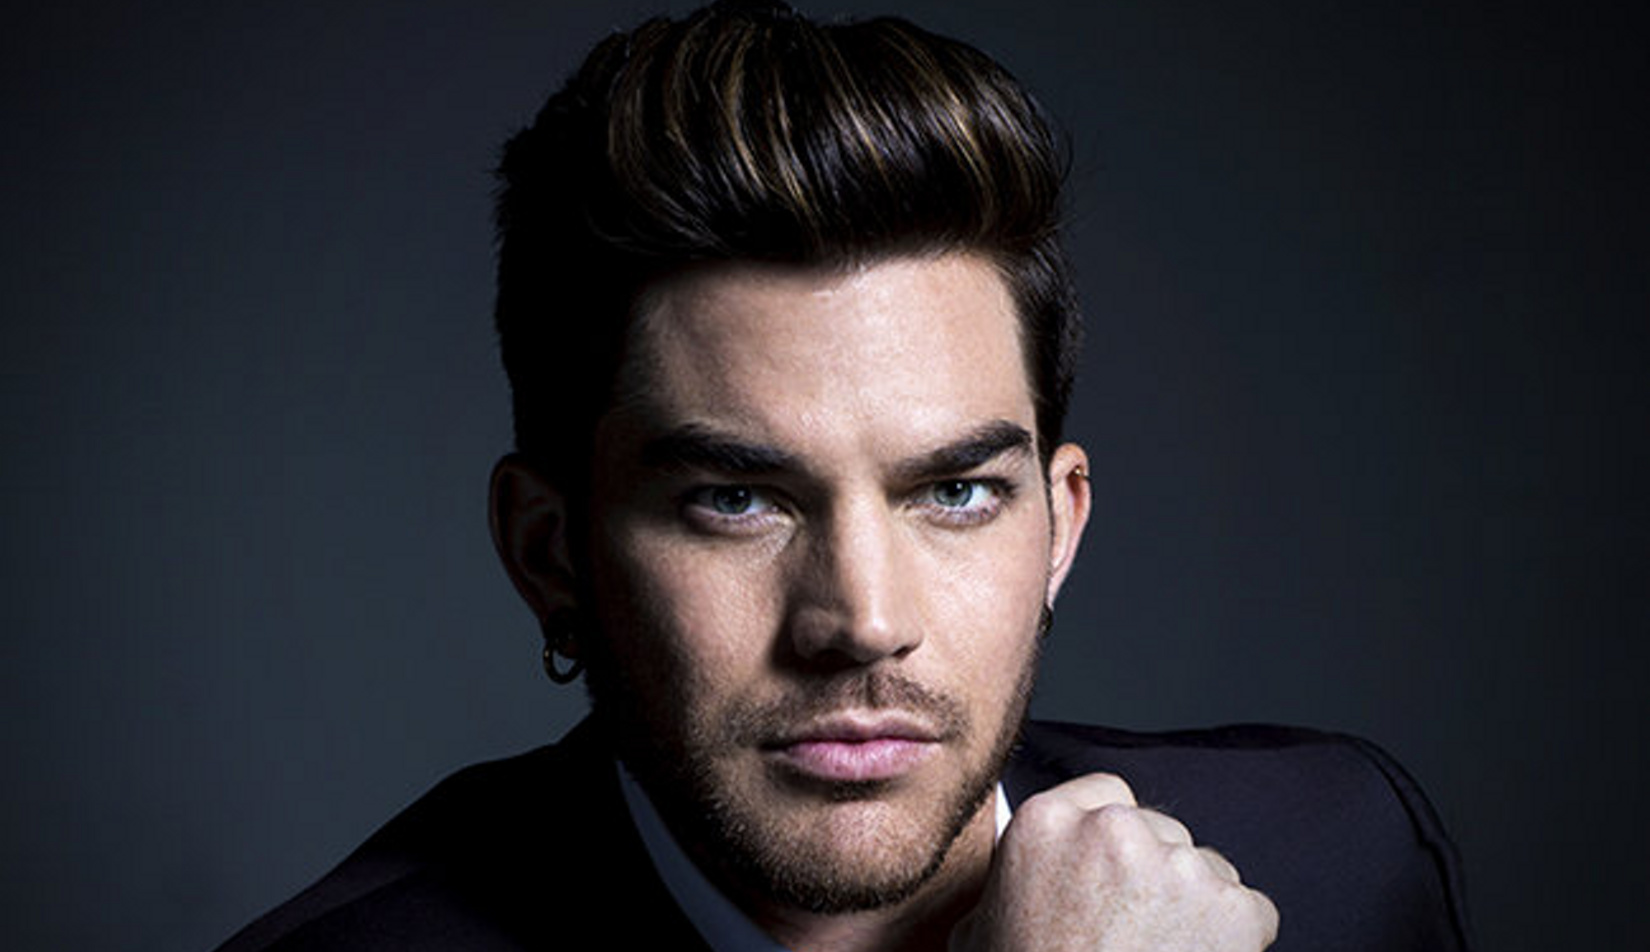 adam-lambert-press-2015-david-roemer-2015-billboard-650